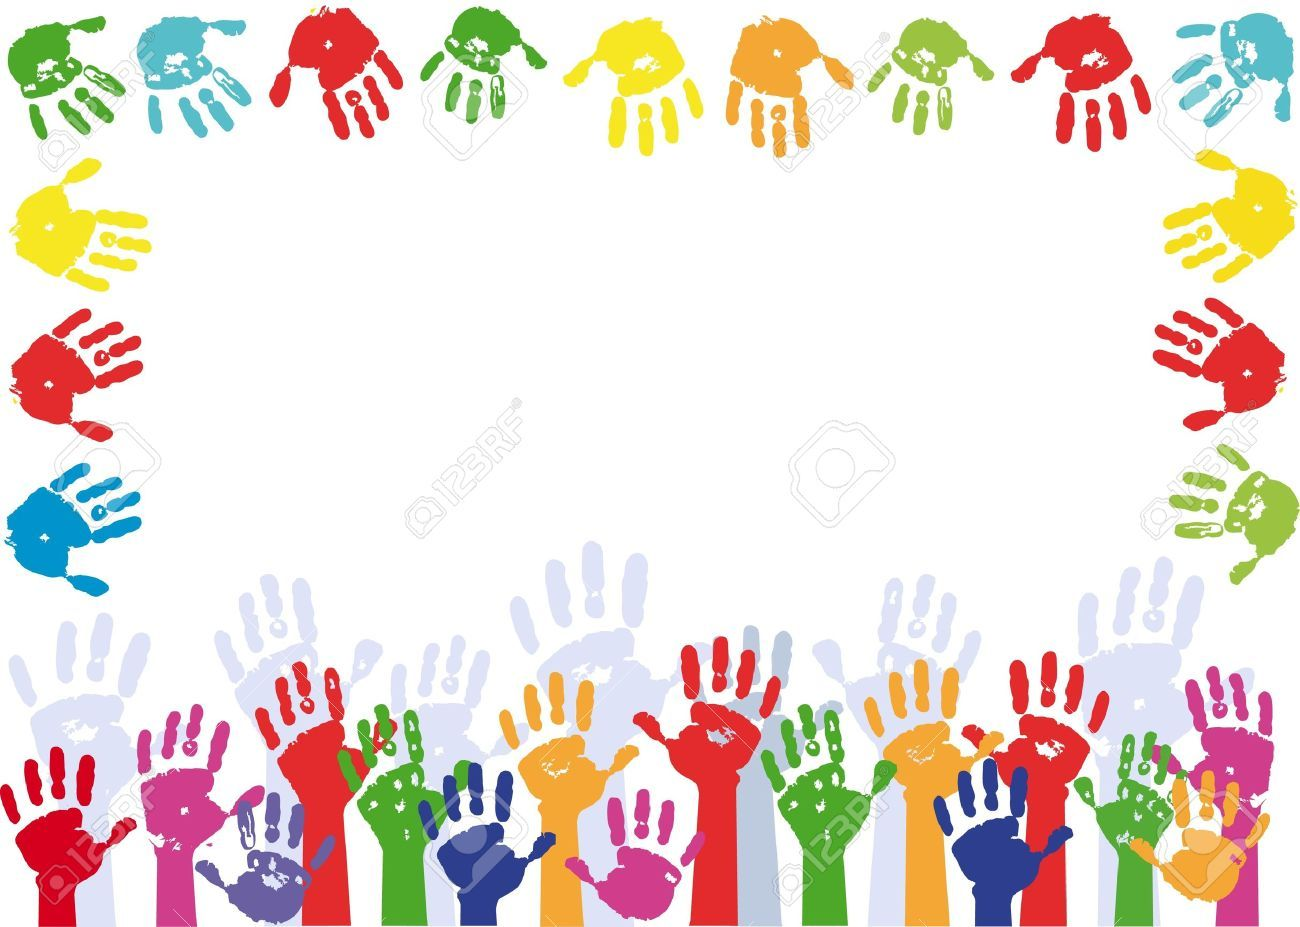 Color Hands Palms Background Frame For Text Stock